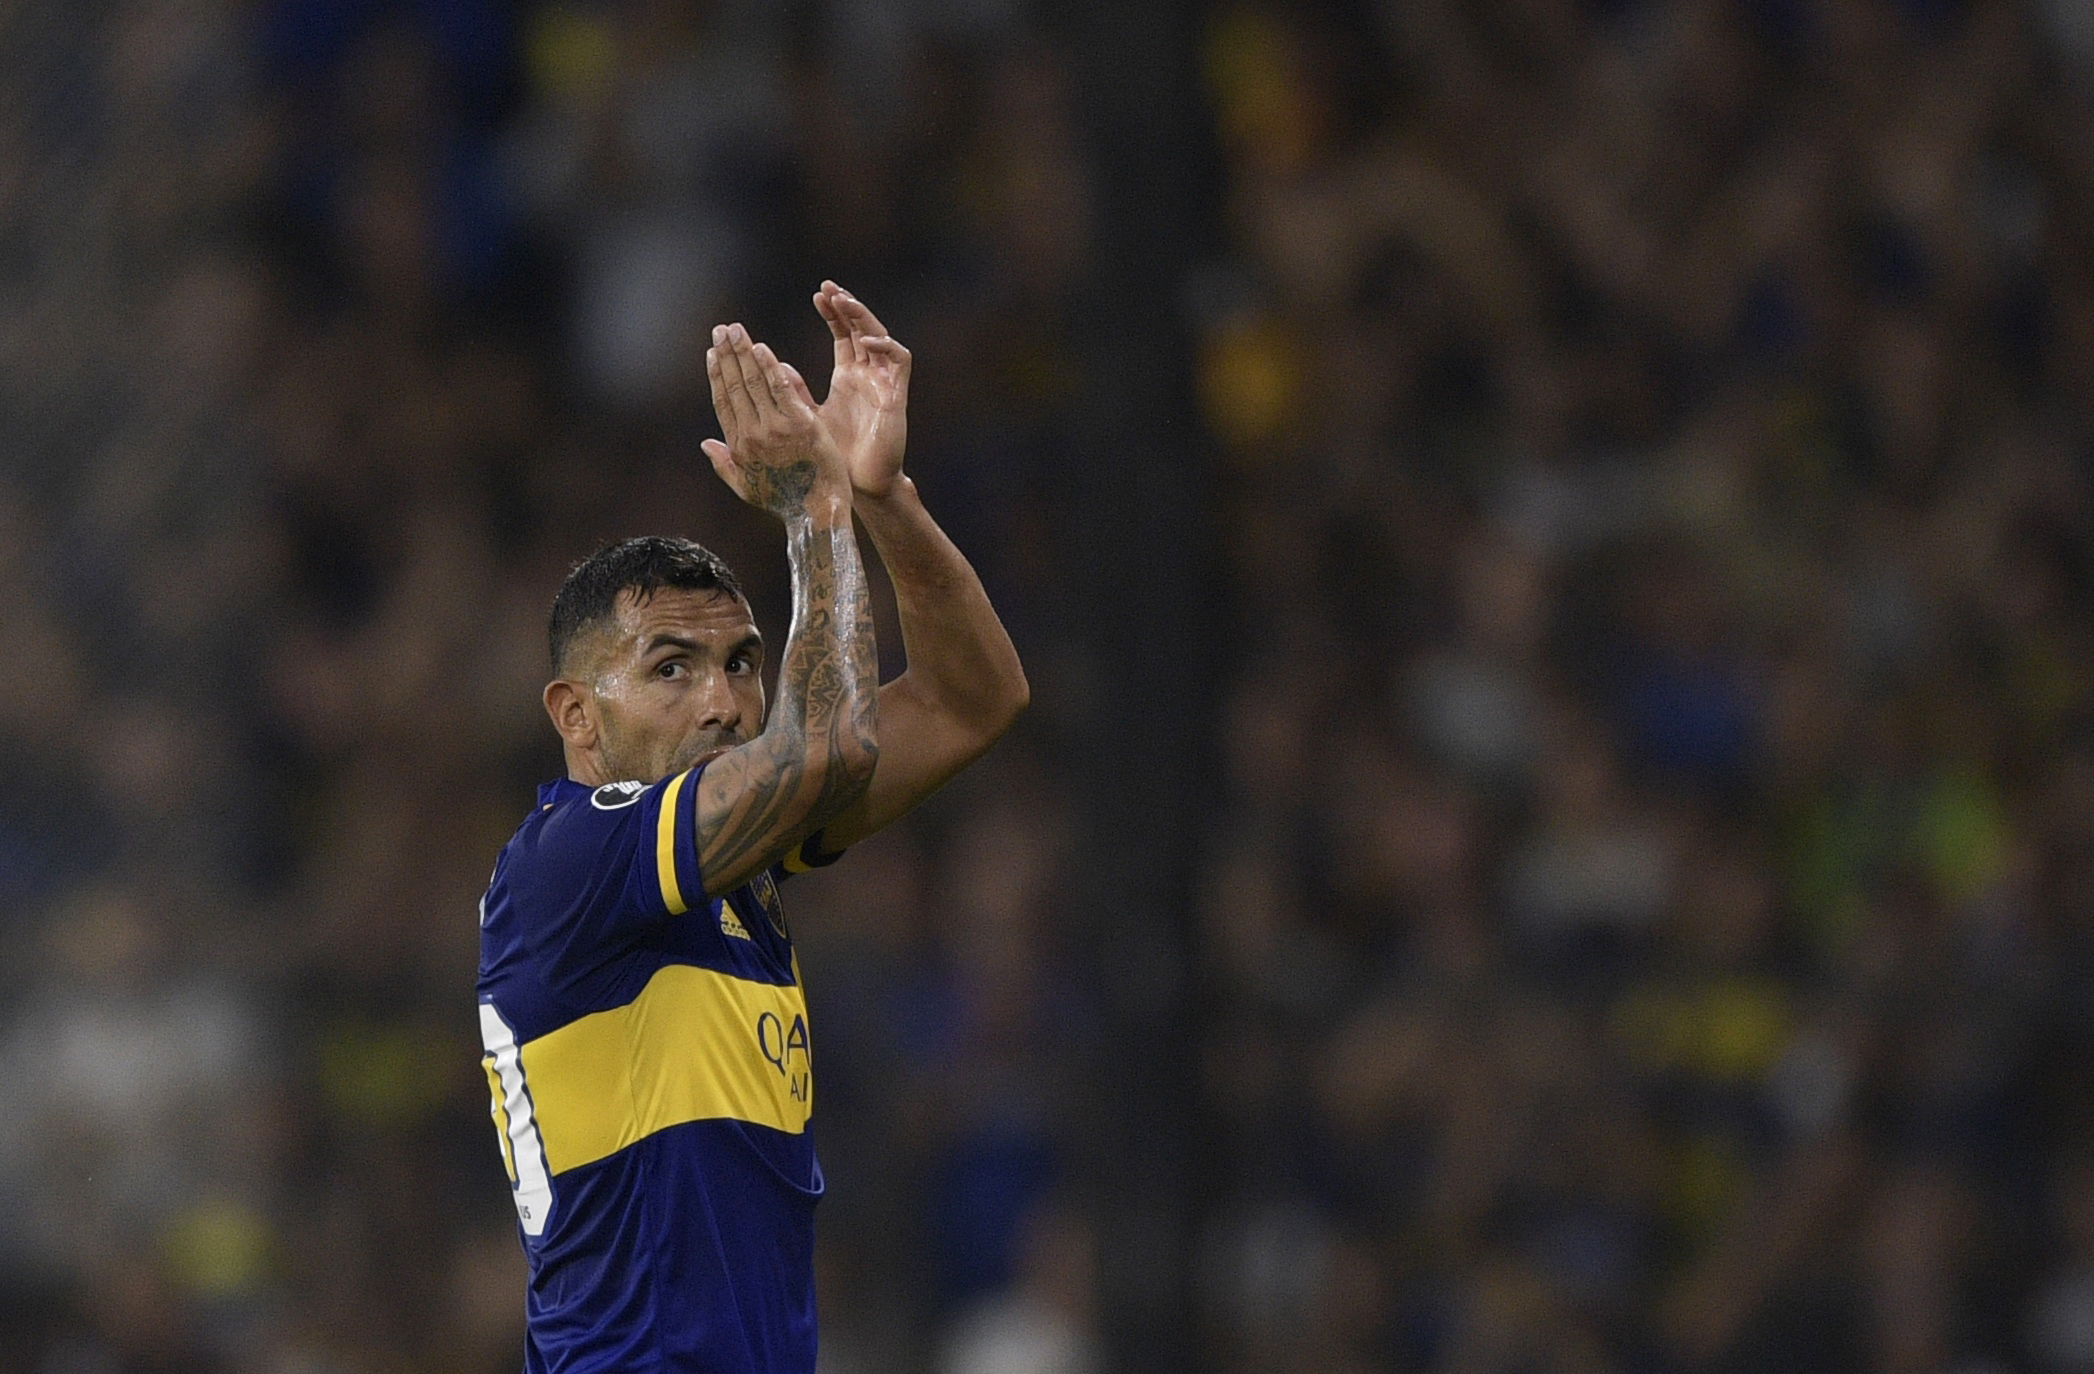 Boca Juniors - DIM